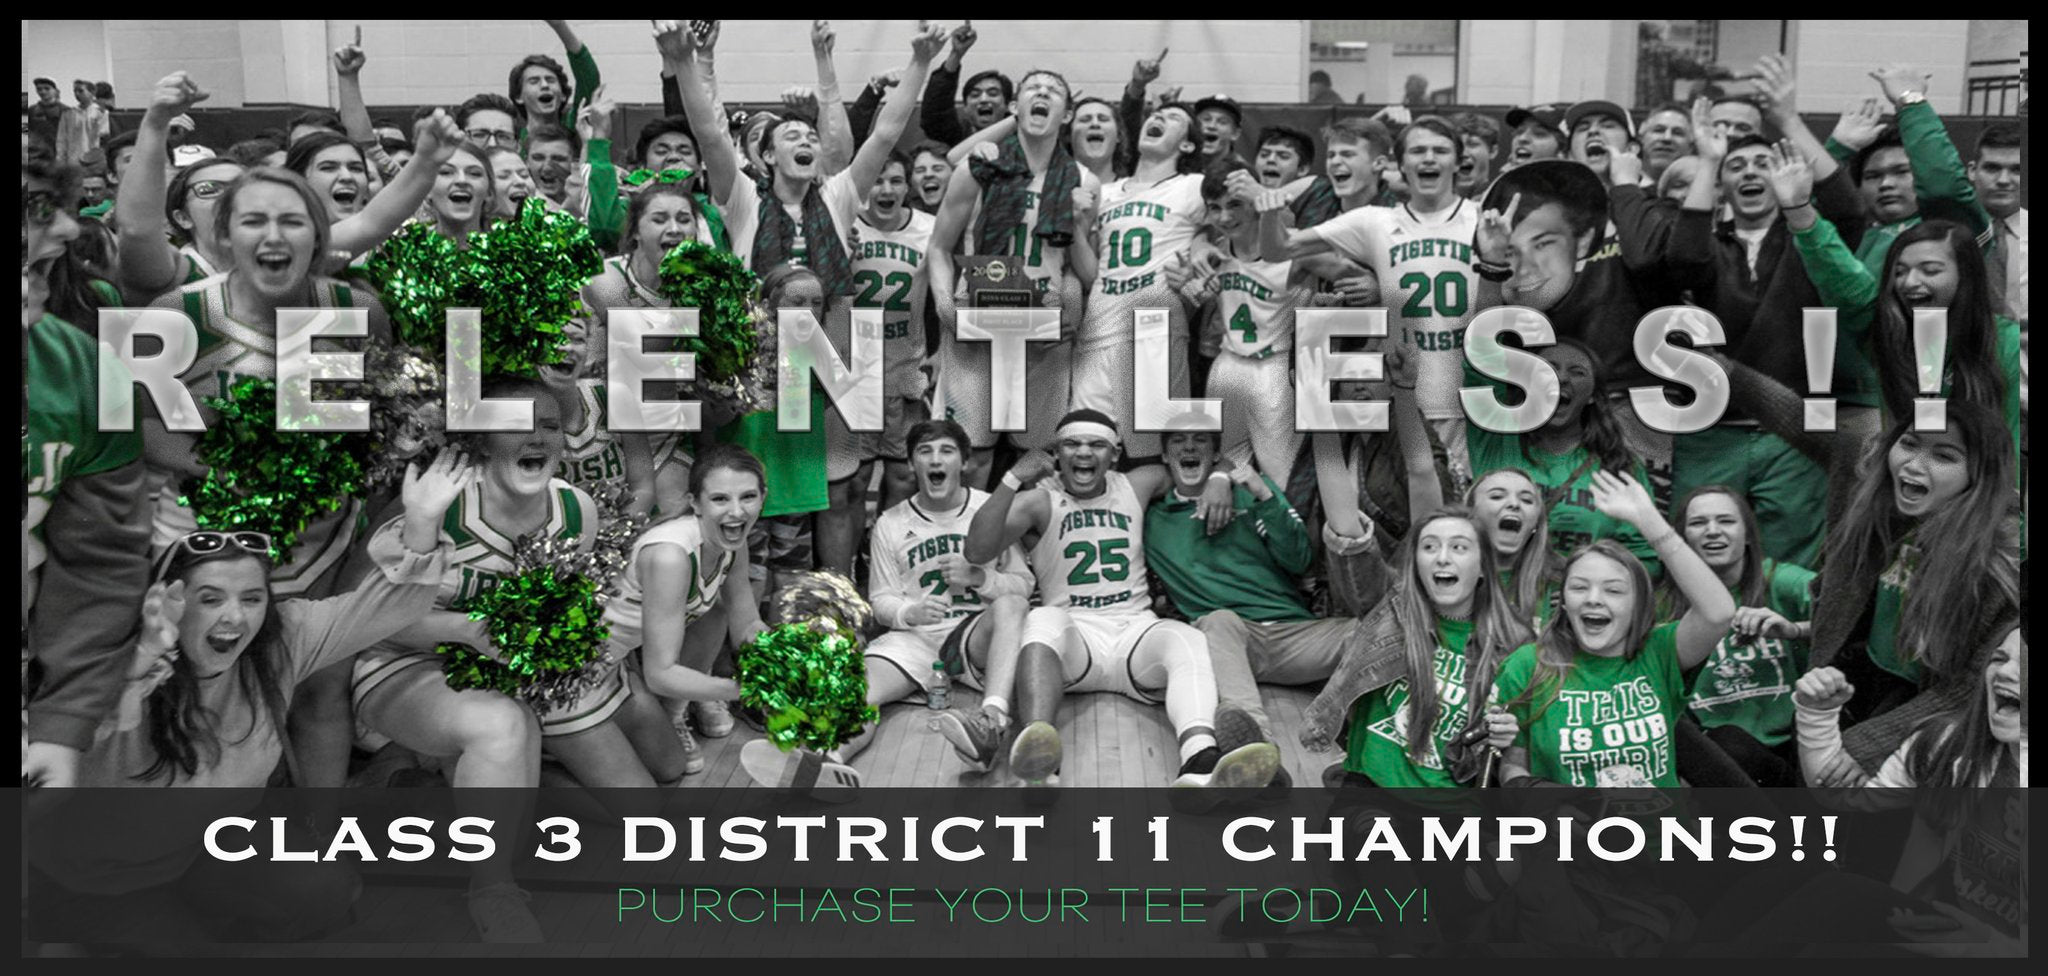 SPRINGFIELD CATHOLIC DISTRICT BASKETBALL CHAMPS